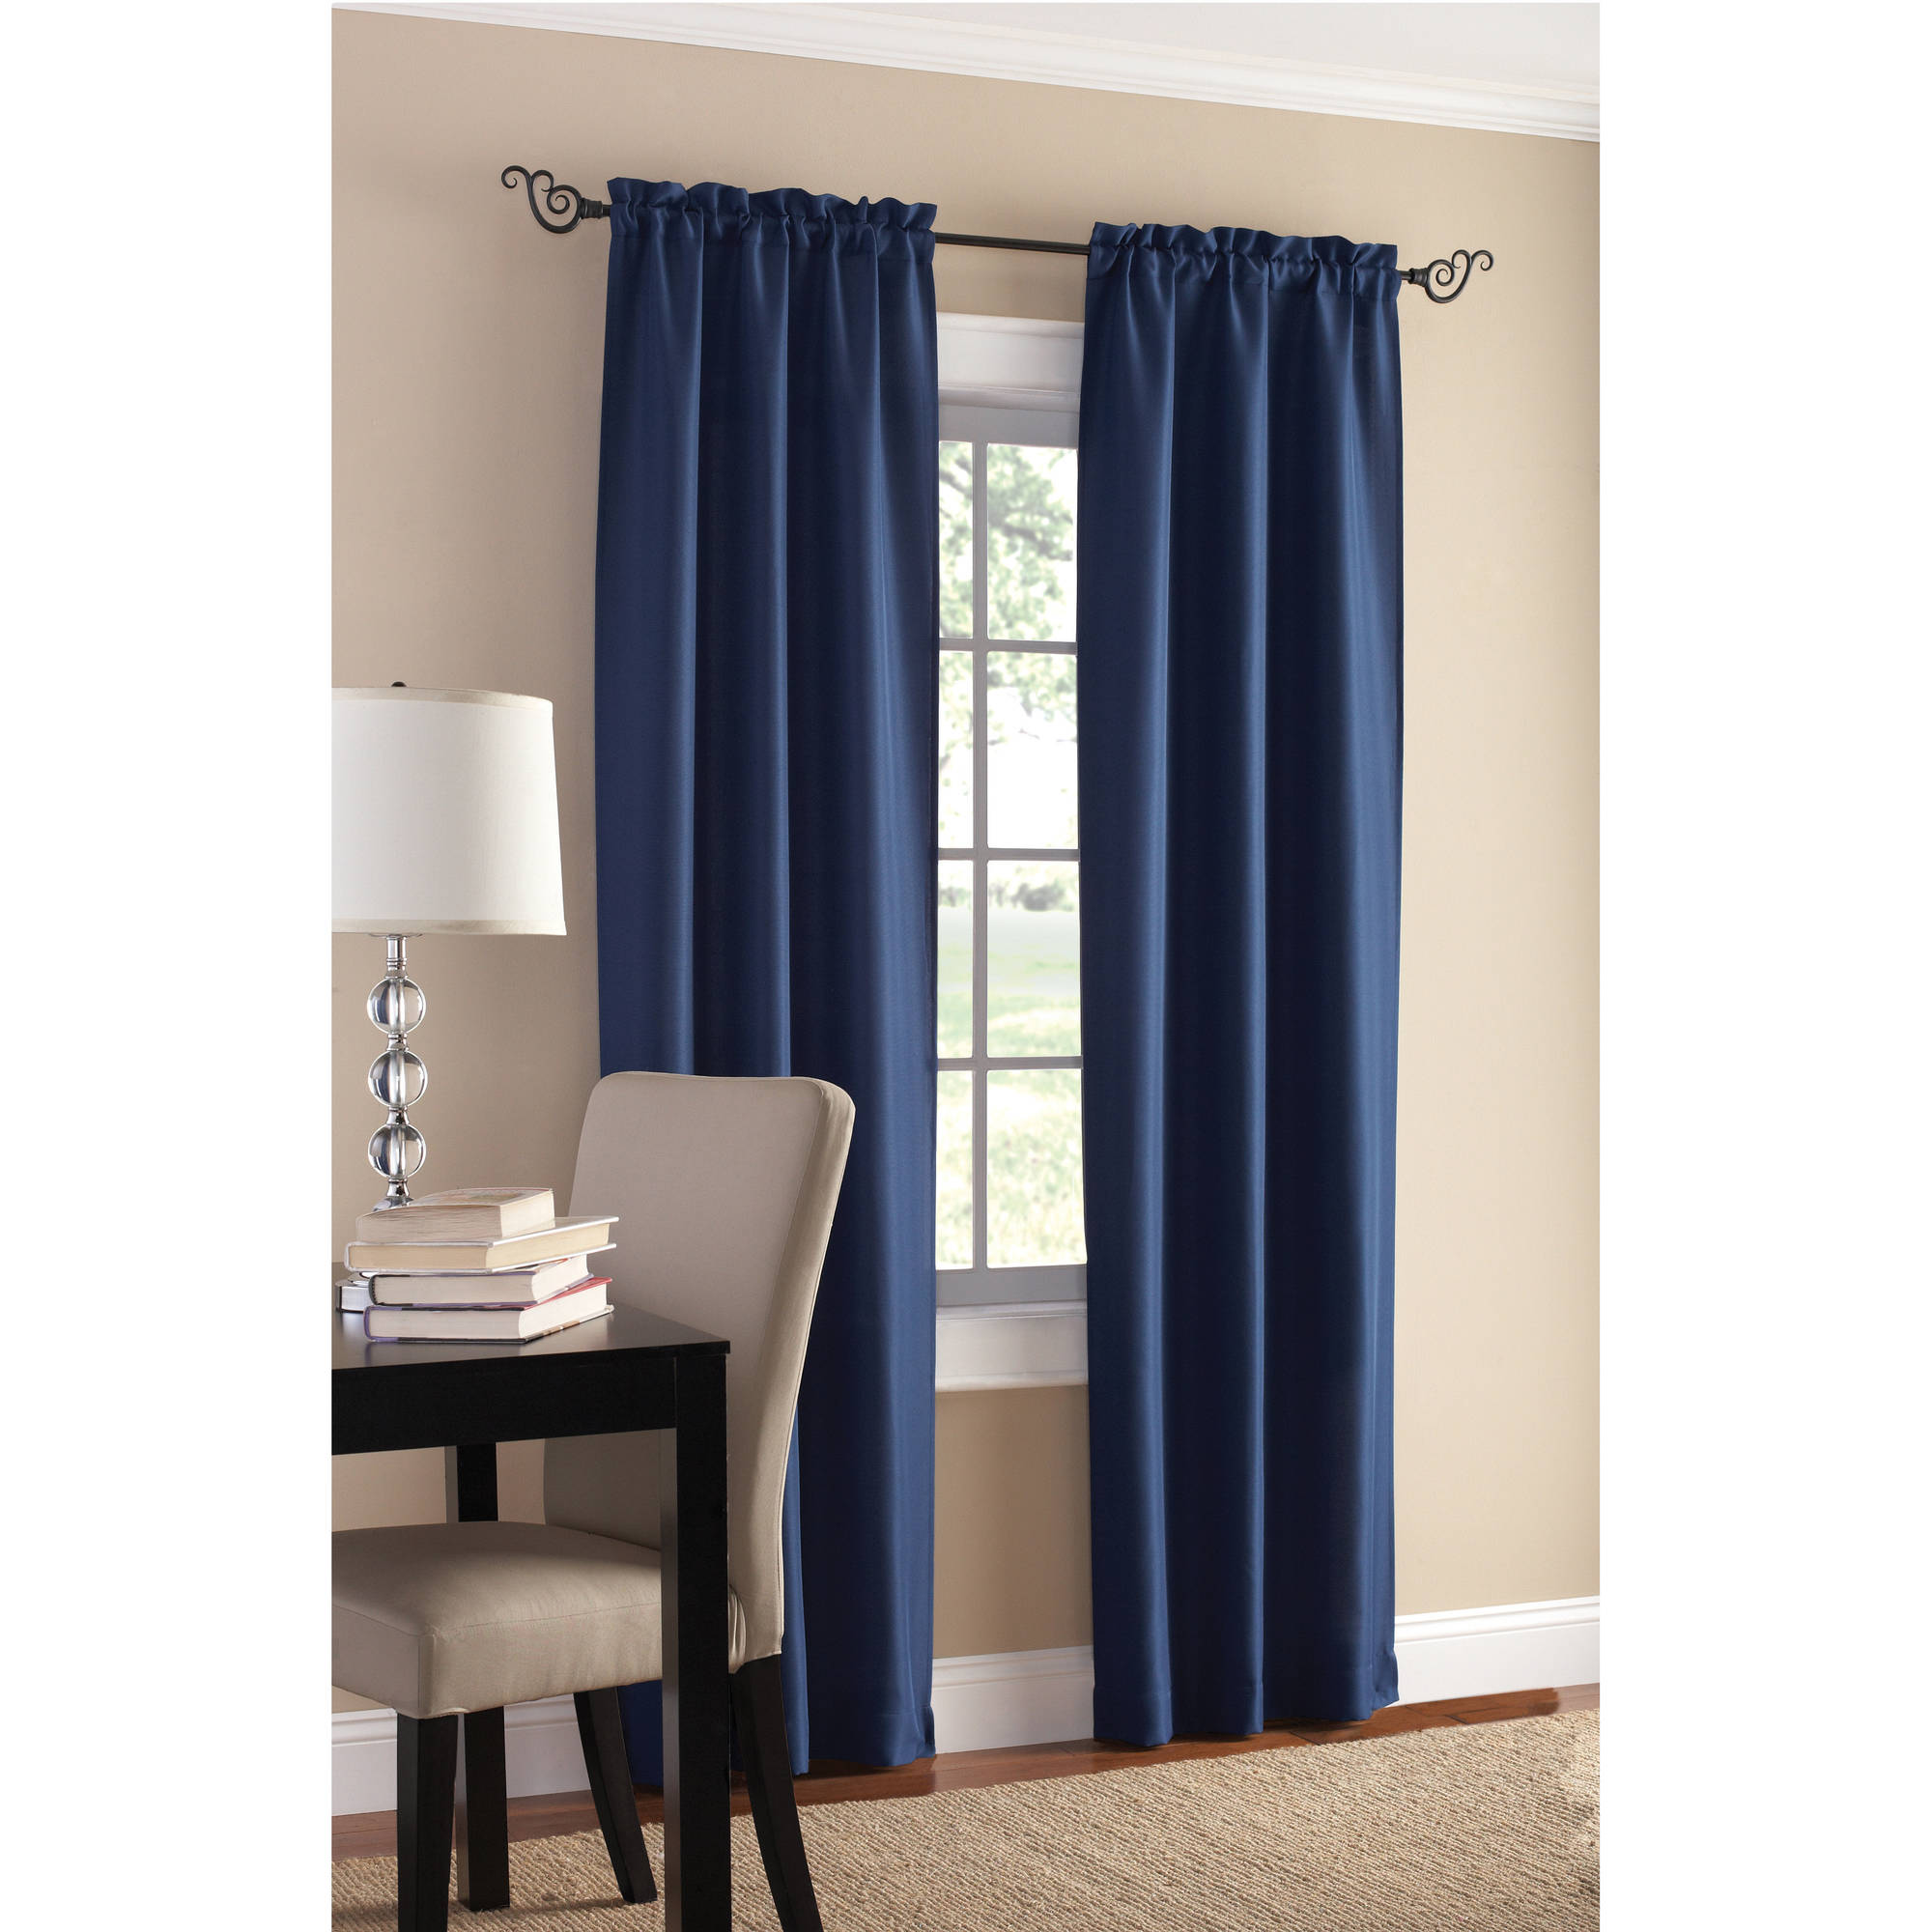 Walmart Curtains For Living Room Brilliant Mainstays Sailcloth Curtain Panel Set Of 2  Walmart Review